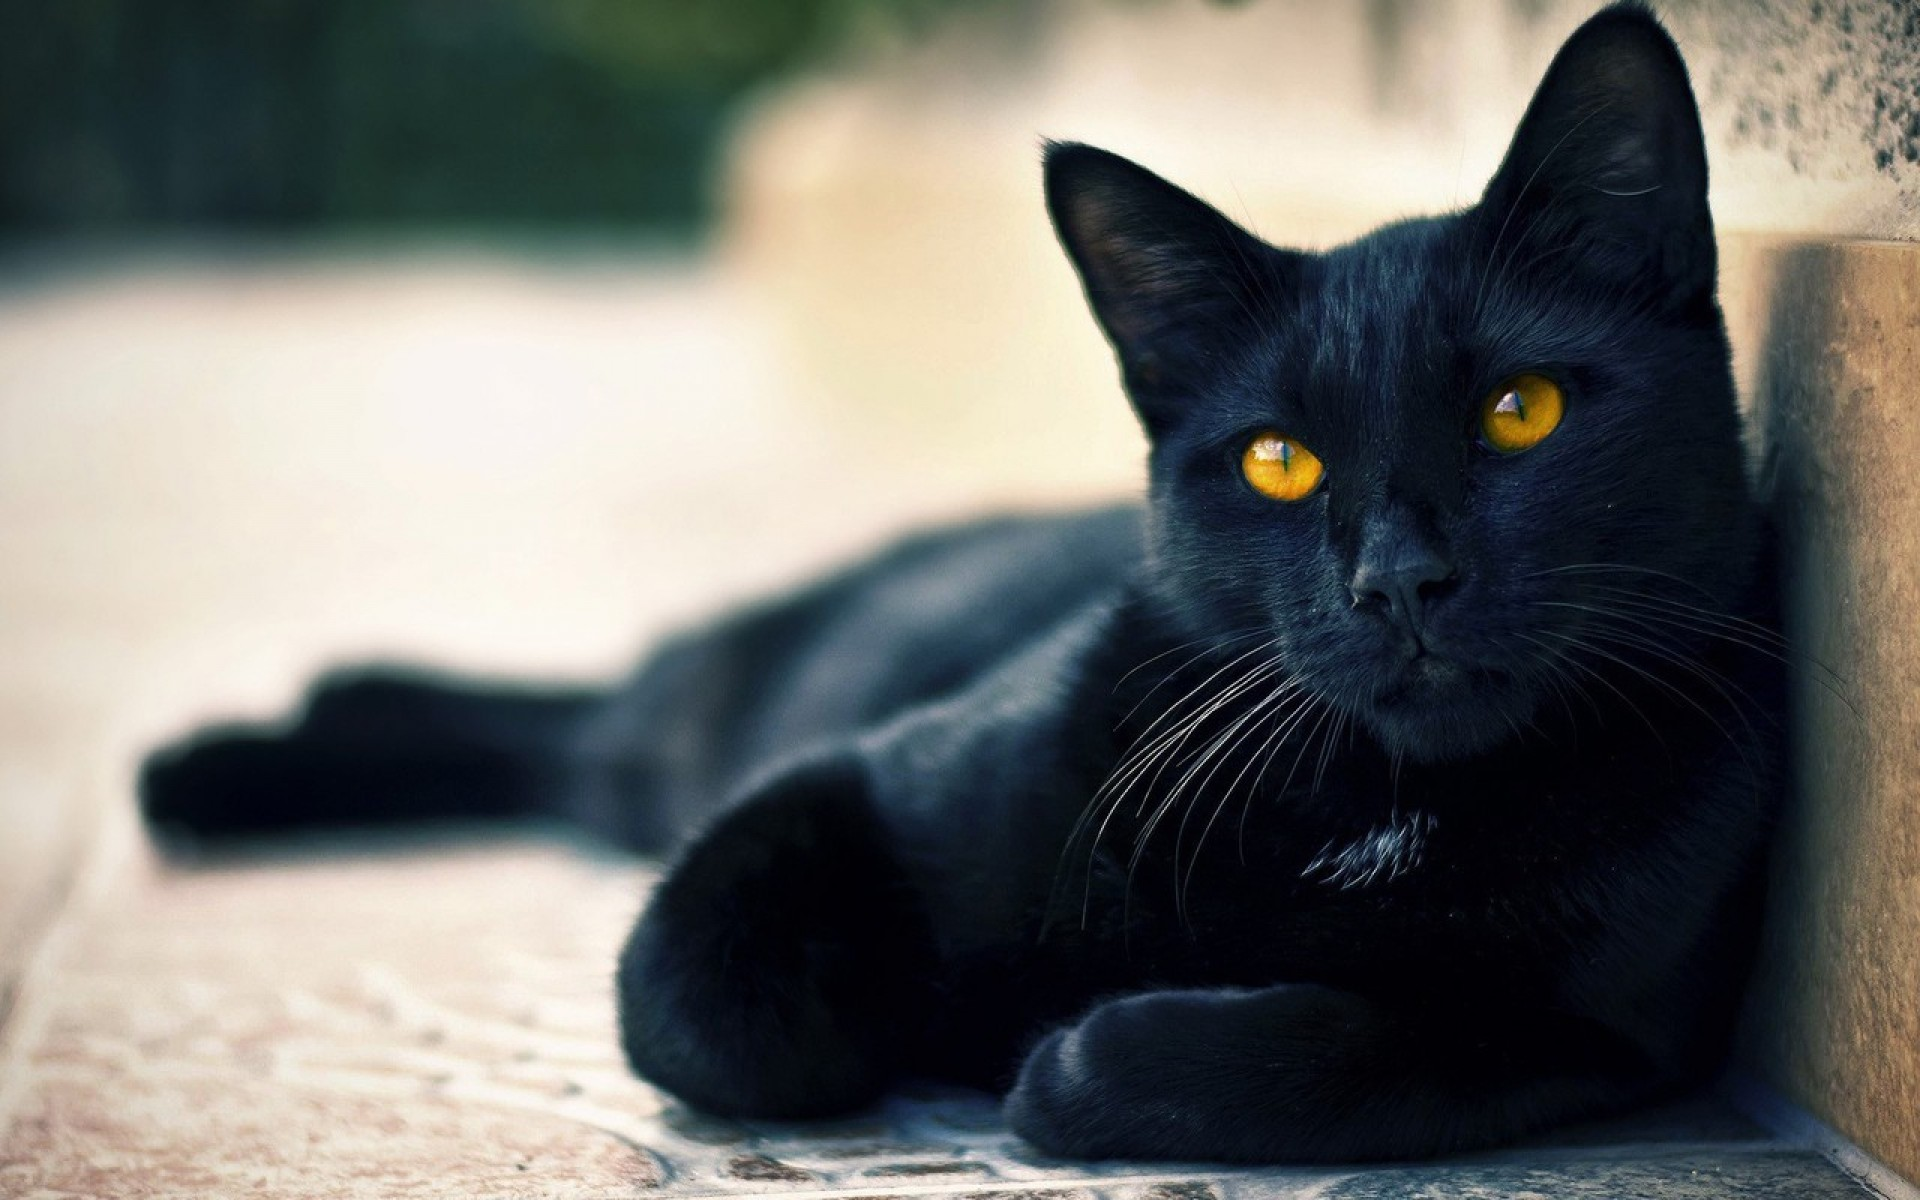 Cute Black Cat Halloween Hd Wallpaper For Desktop And